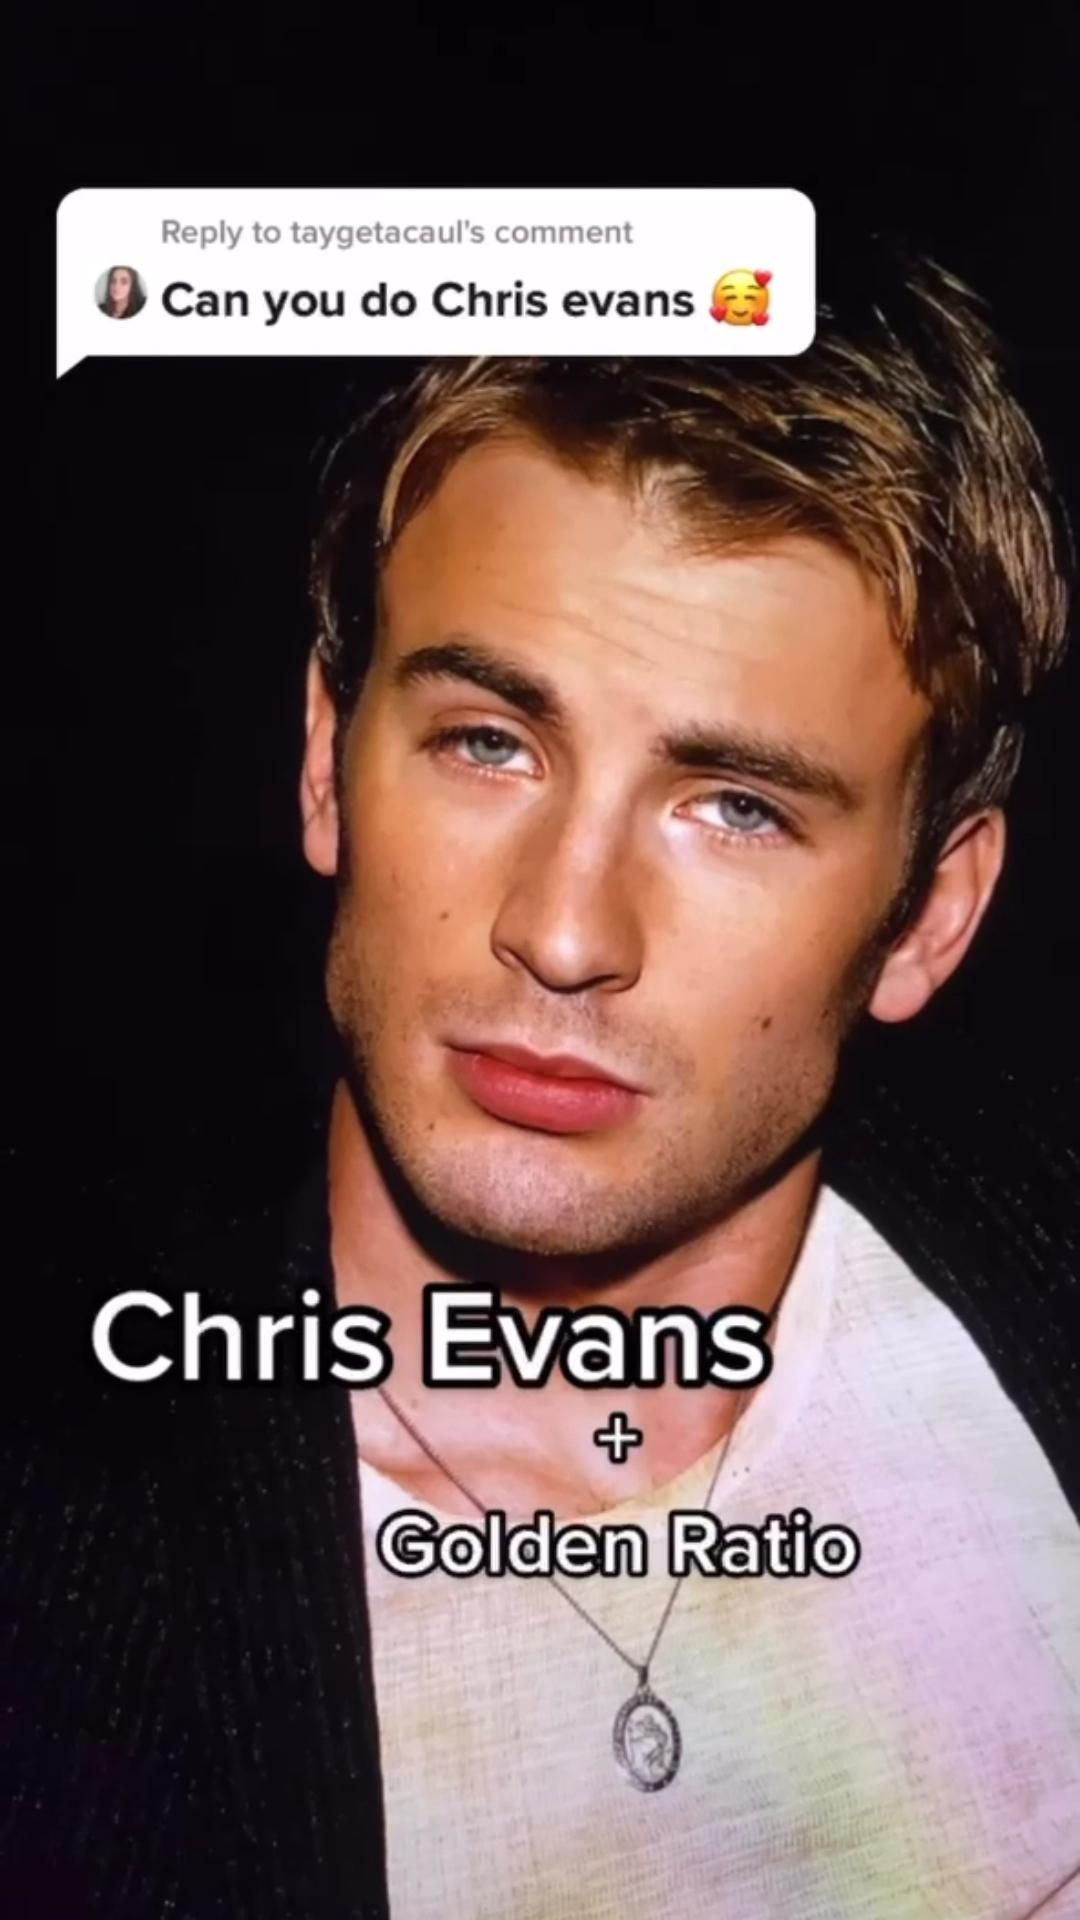 Chris Evans and the golden ratio